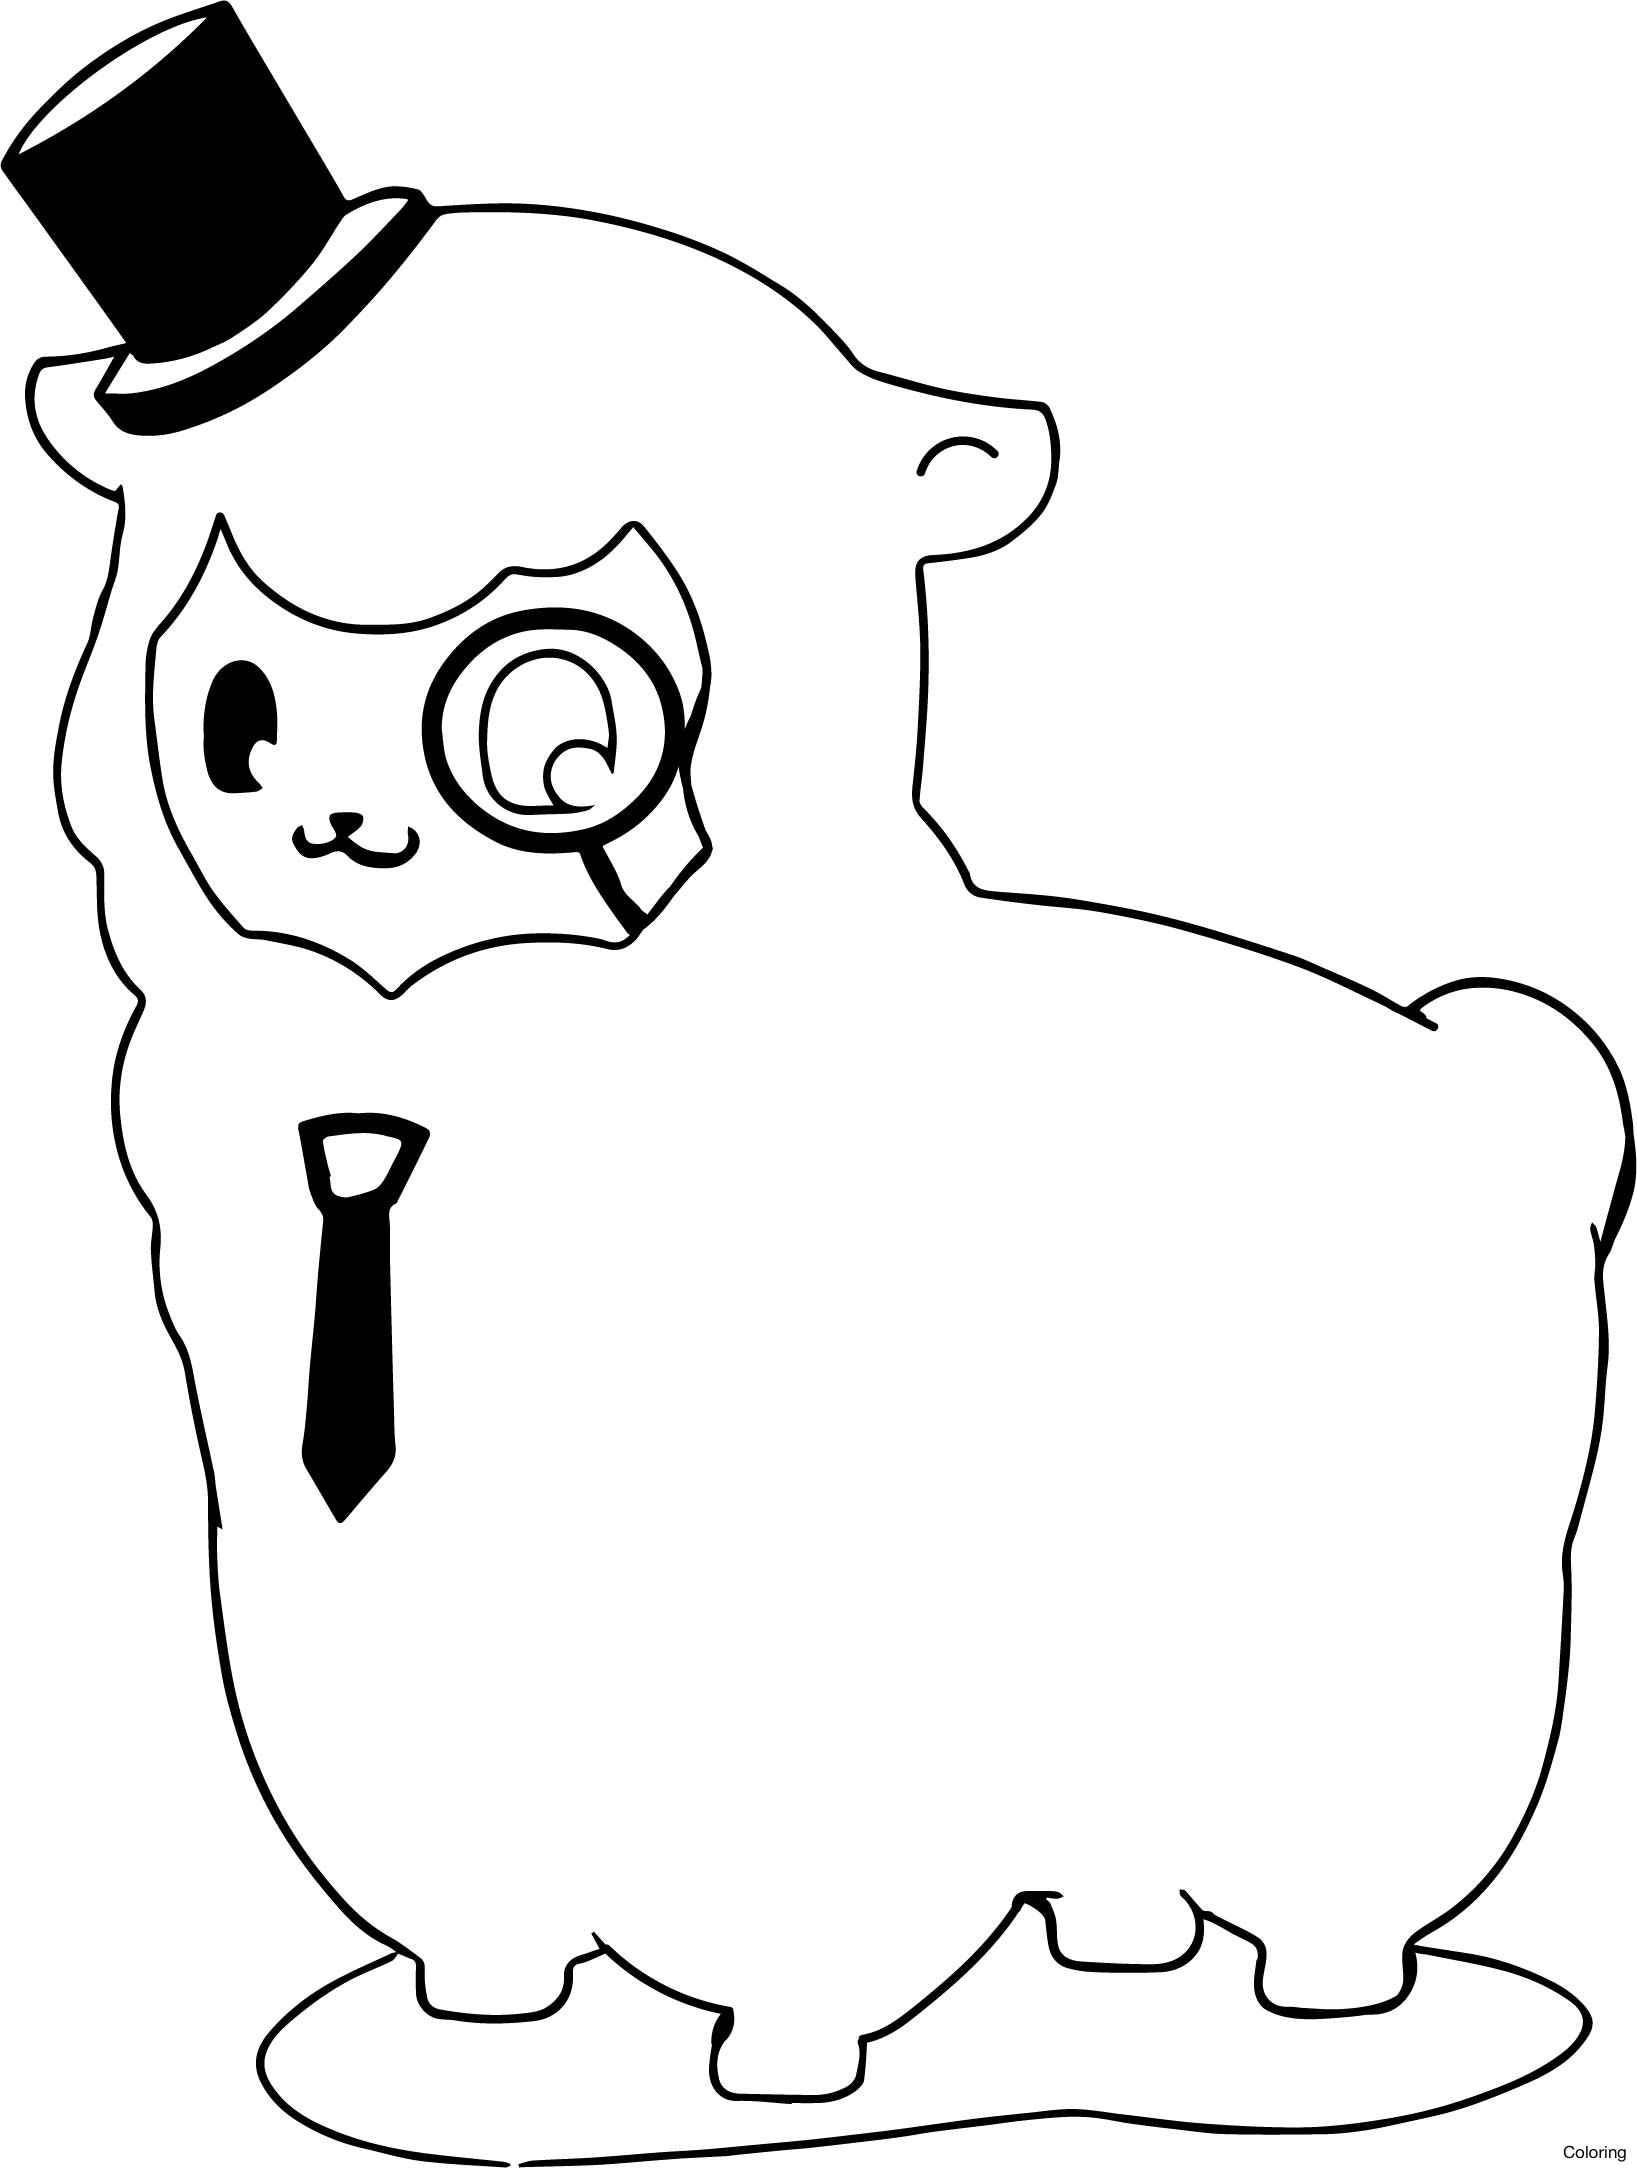 1637x2168 Llama And Alpaca Coloring Page Pages 0f Baby Free Diaiz